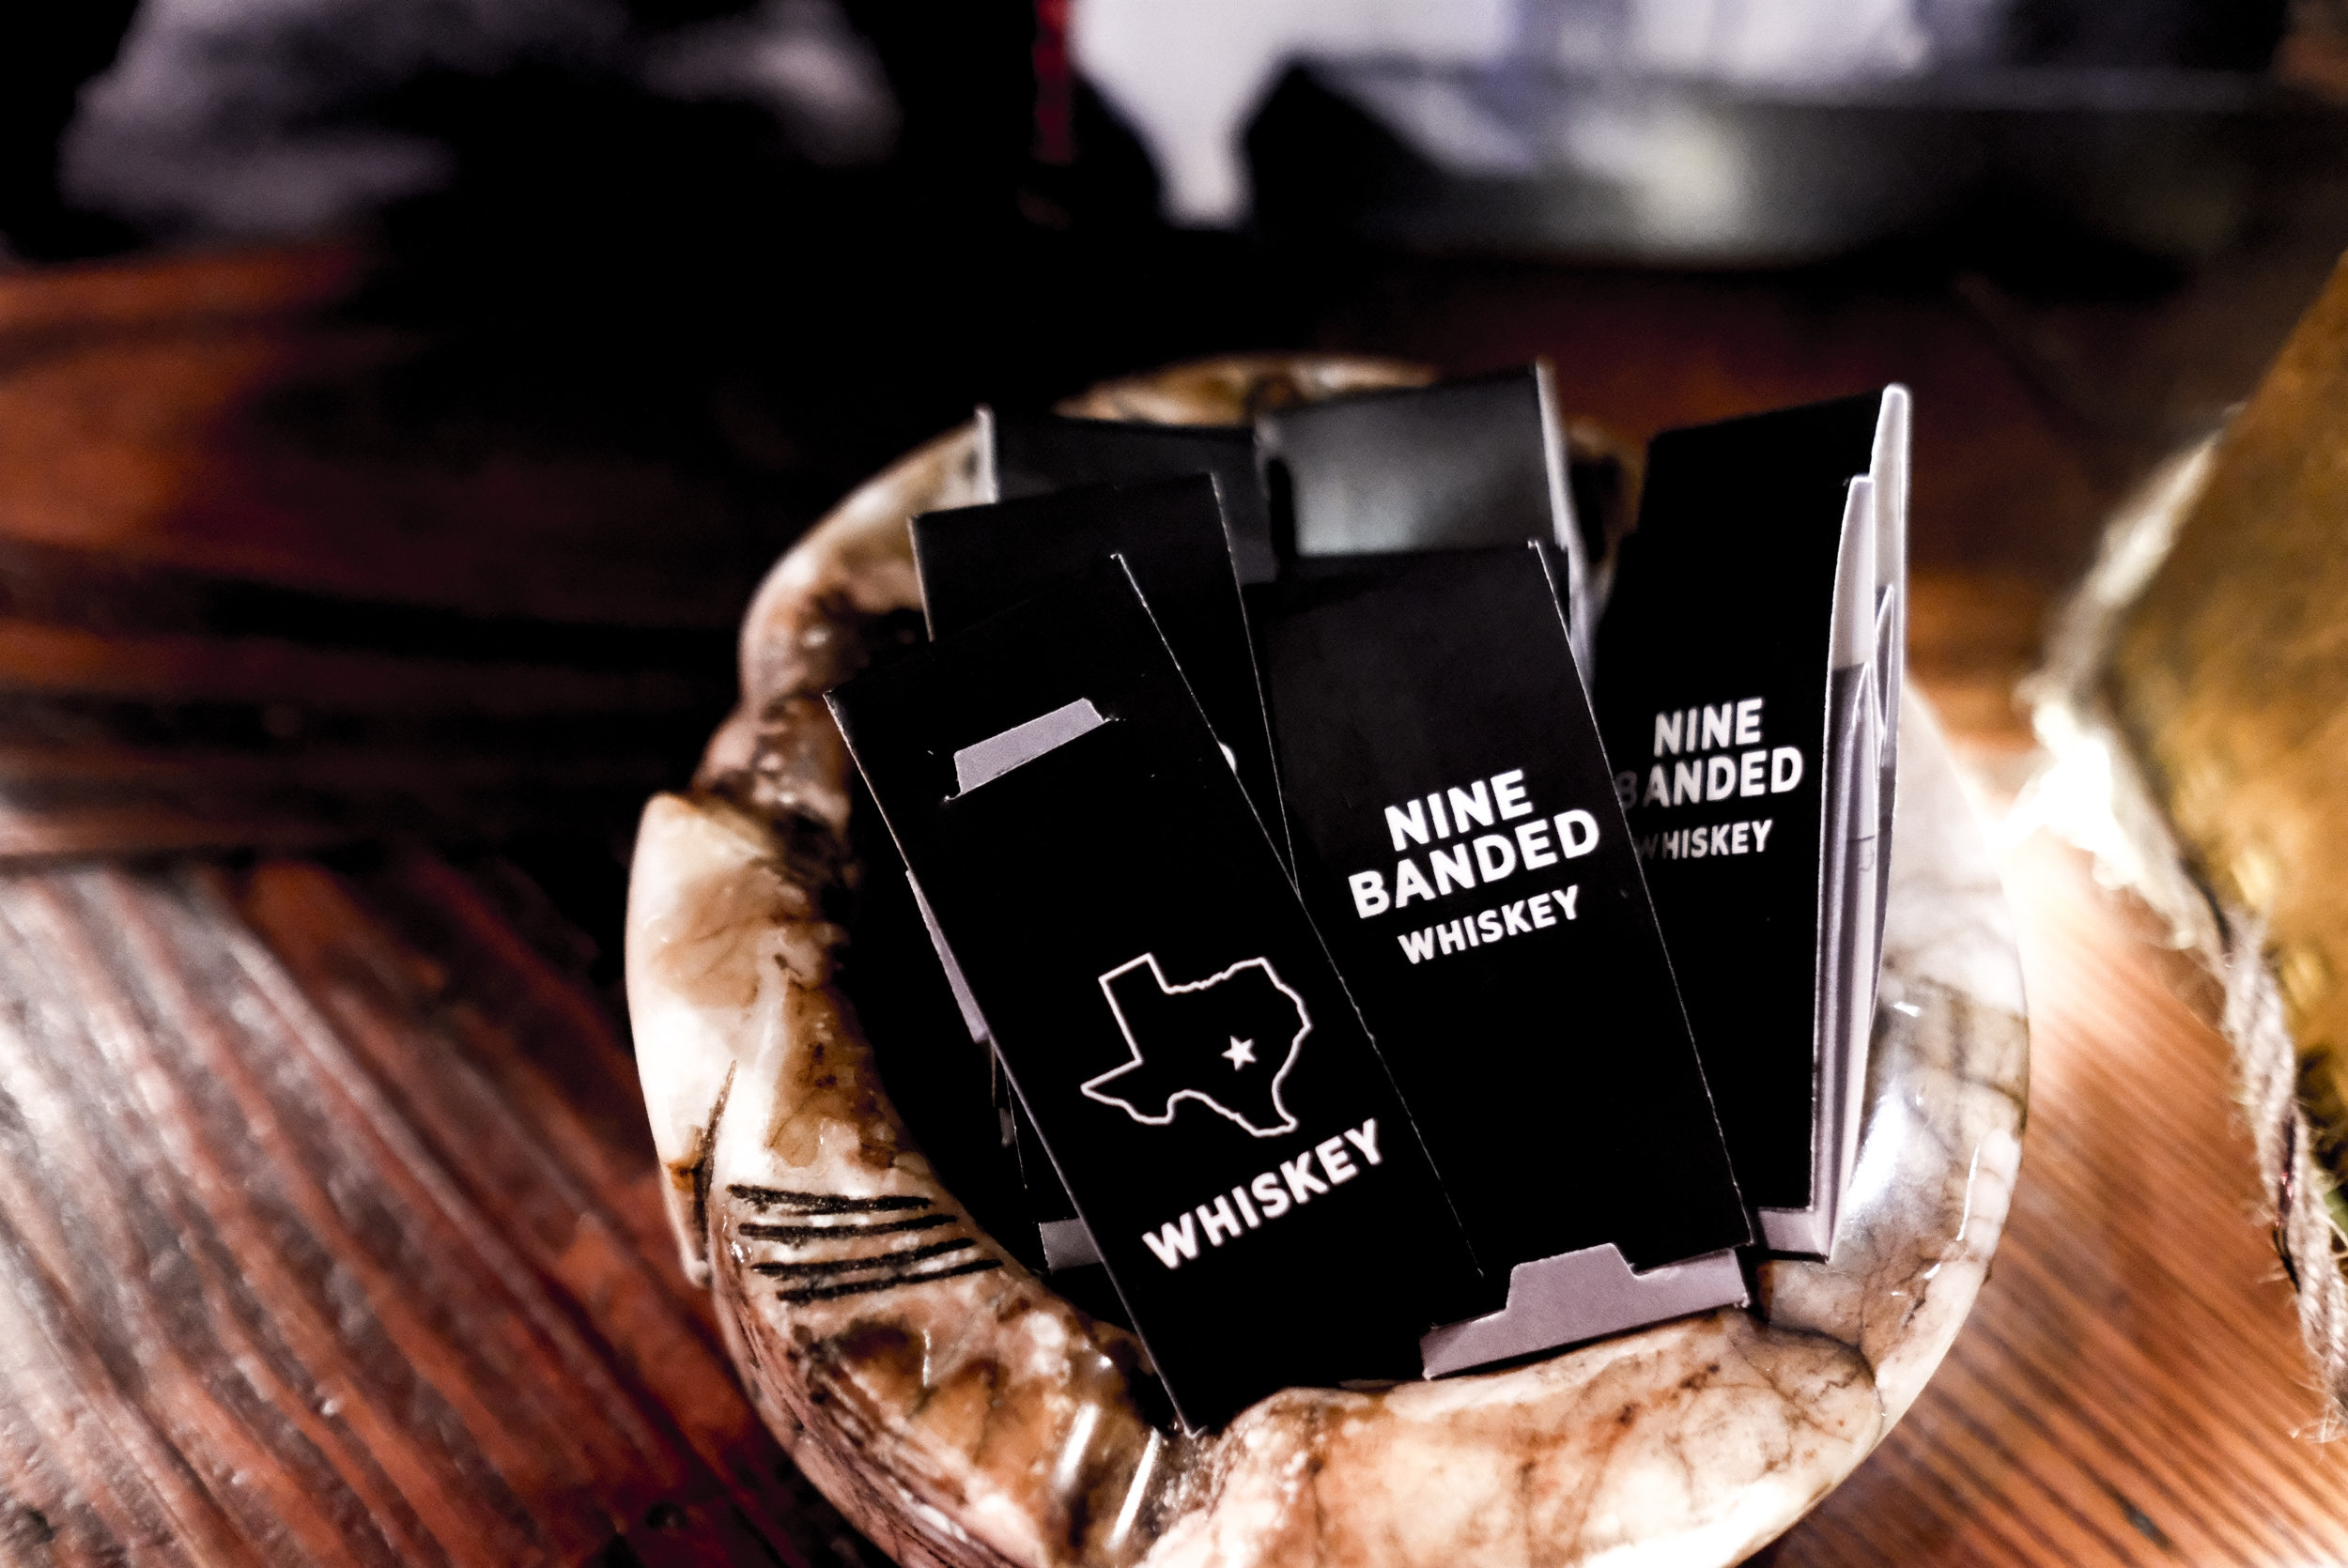 Nine_Banded_Whiskey_Austin_Texas_54.jpg